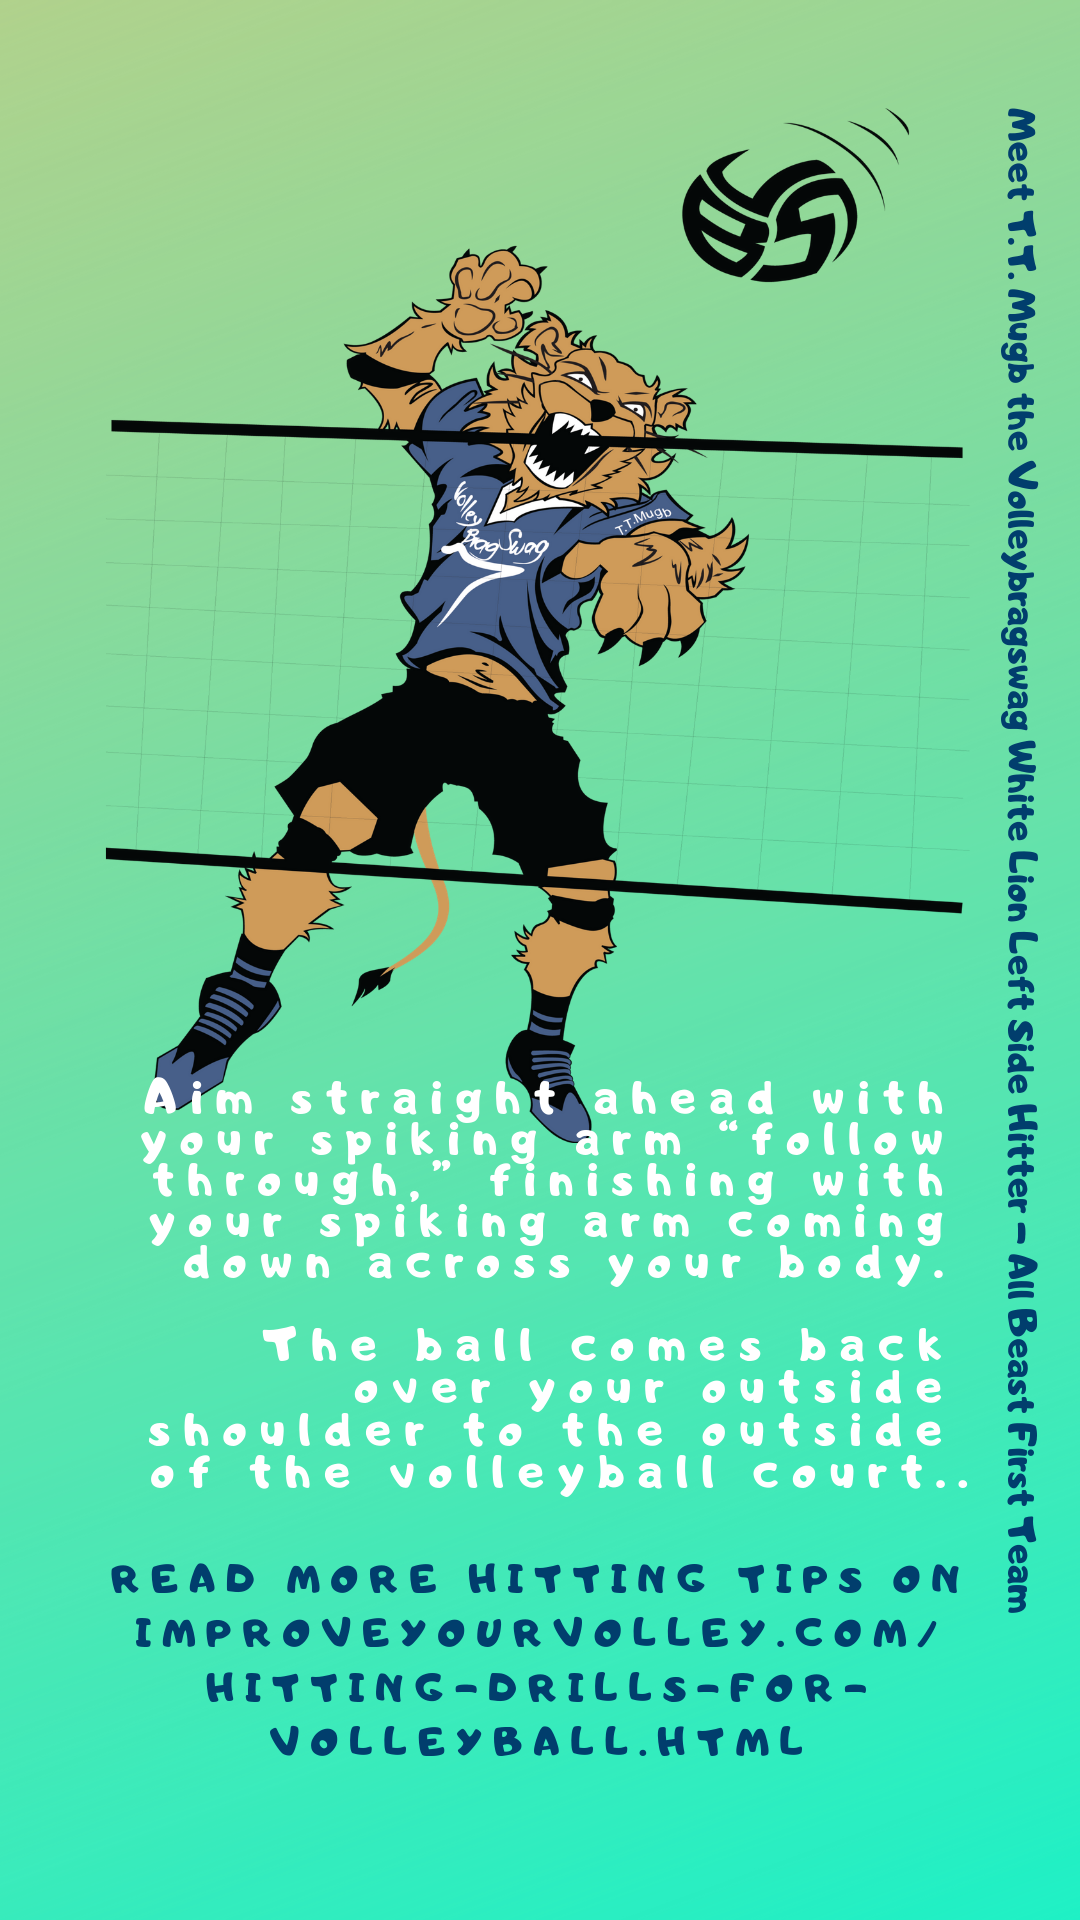 "Volleyball Spike Tips: Aim straight ahead with your spiking arm ""follow through"" finishing with your spiking arm coming down across your body."